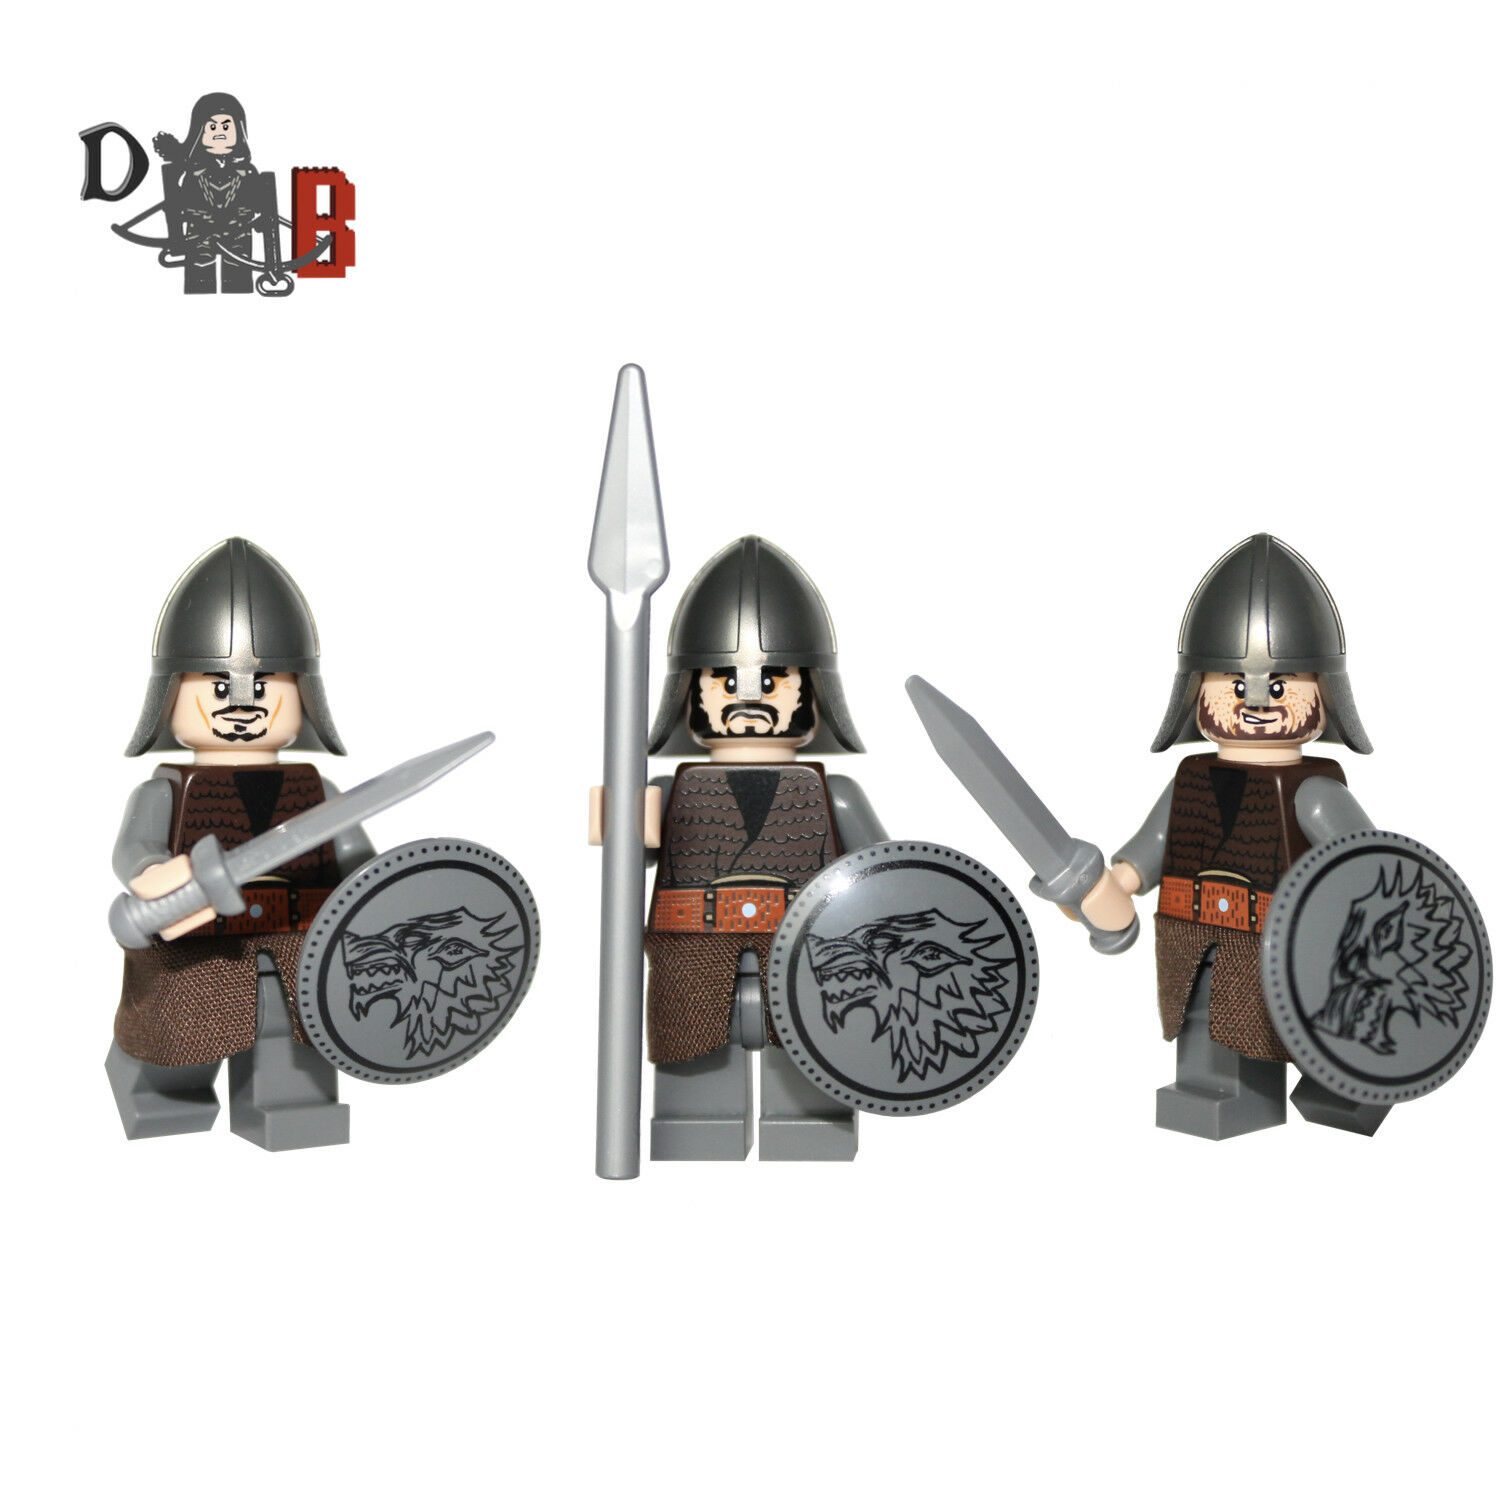 Game of Thrones Stark Soldier Jon Snow guards Minifigures. Made with LEGO parts